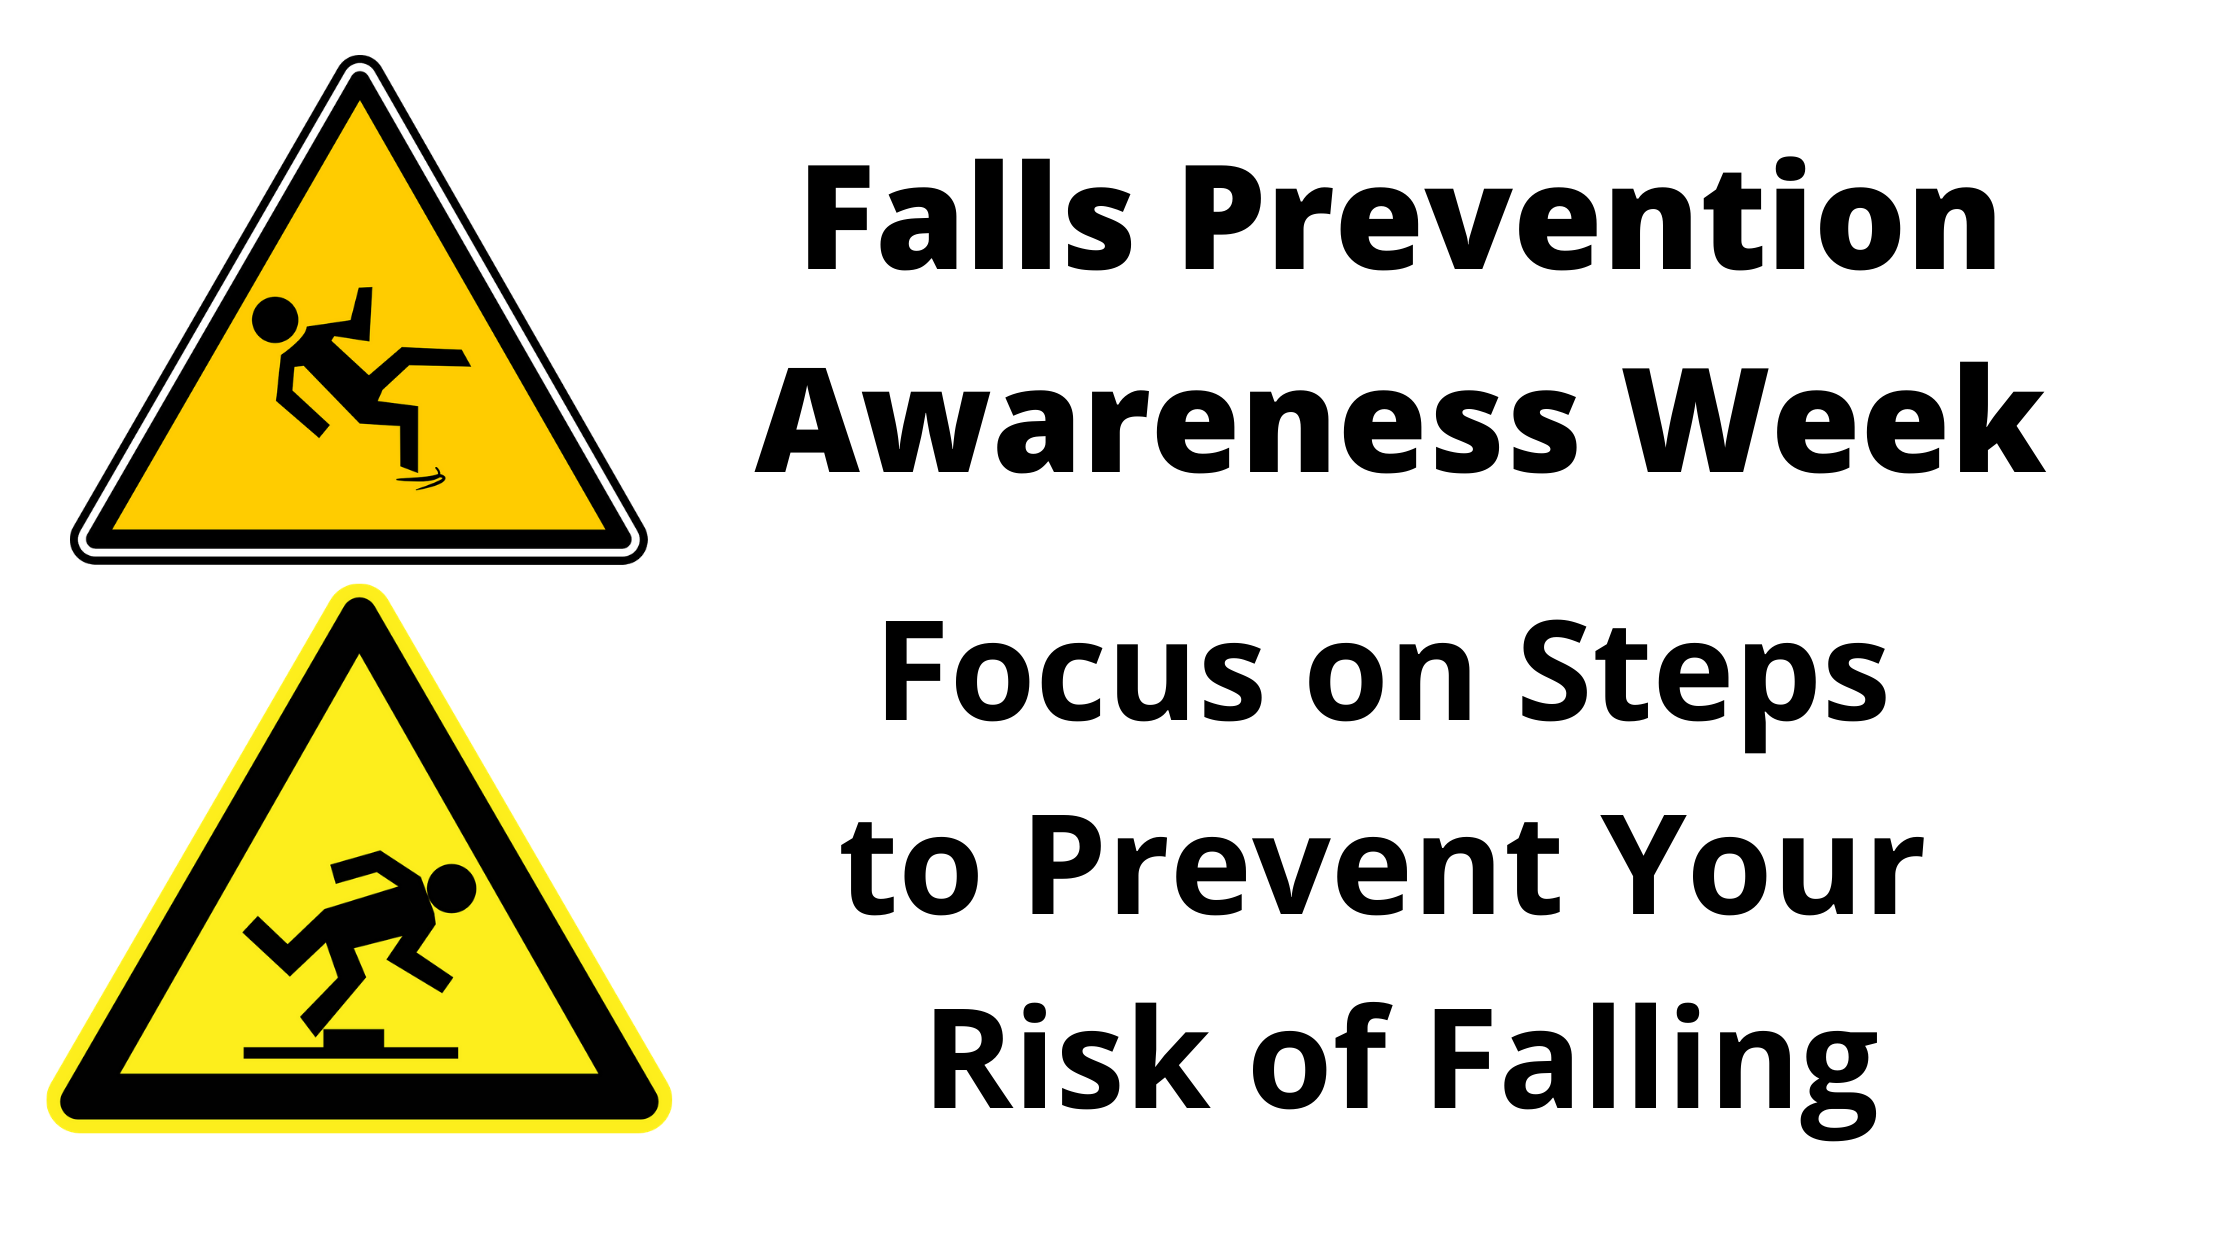 falls, prevention, signs, focus, steps